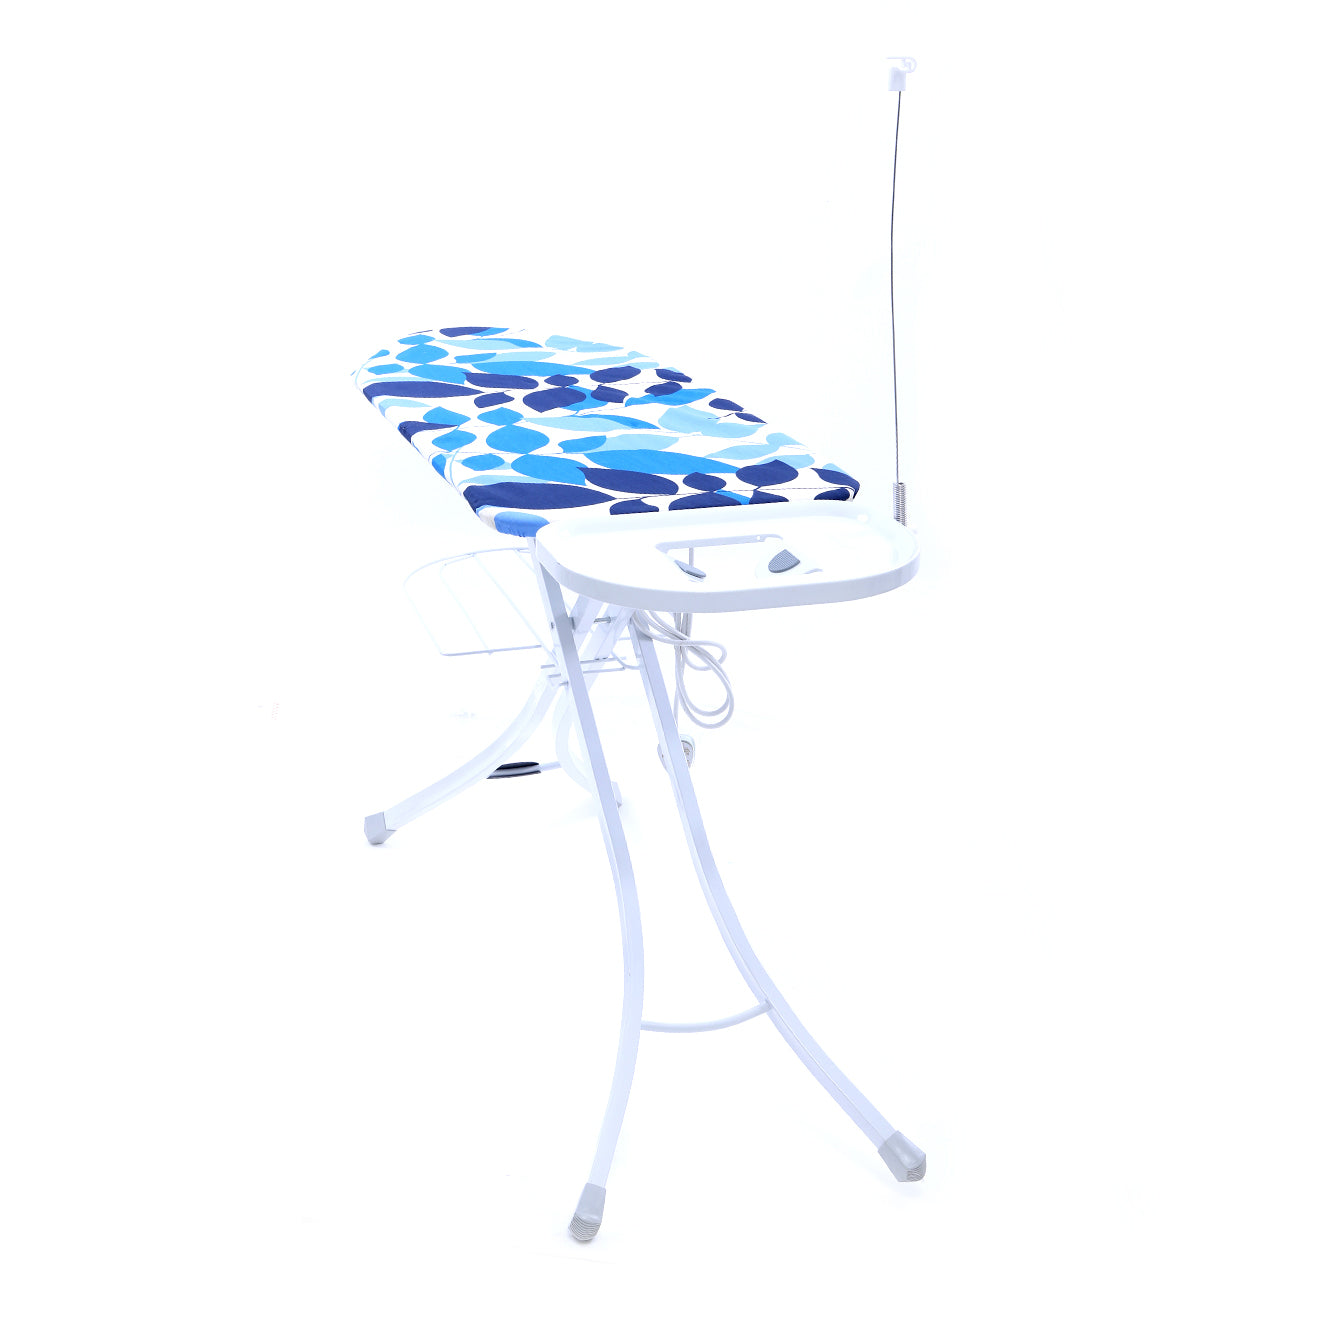 Royalford RF1965IB Mesh Ironing Board with Socket, 127x46 CM